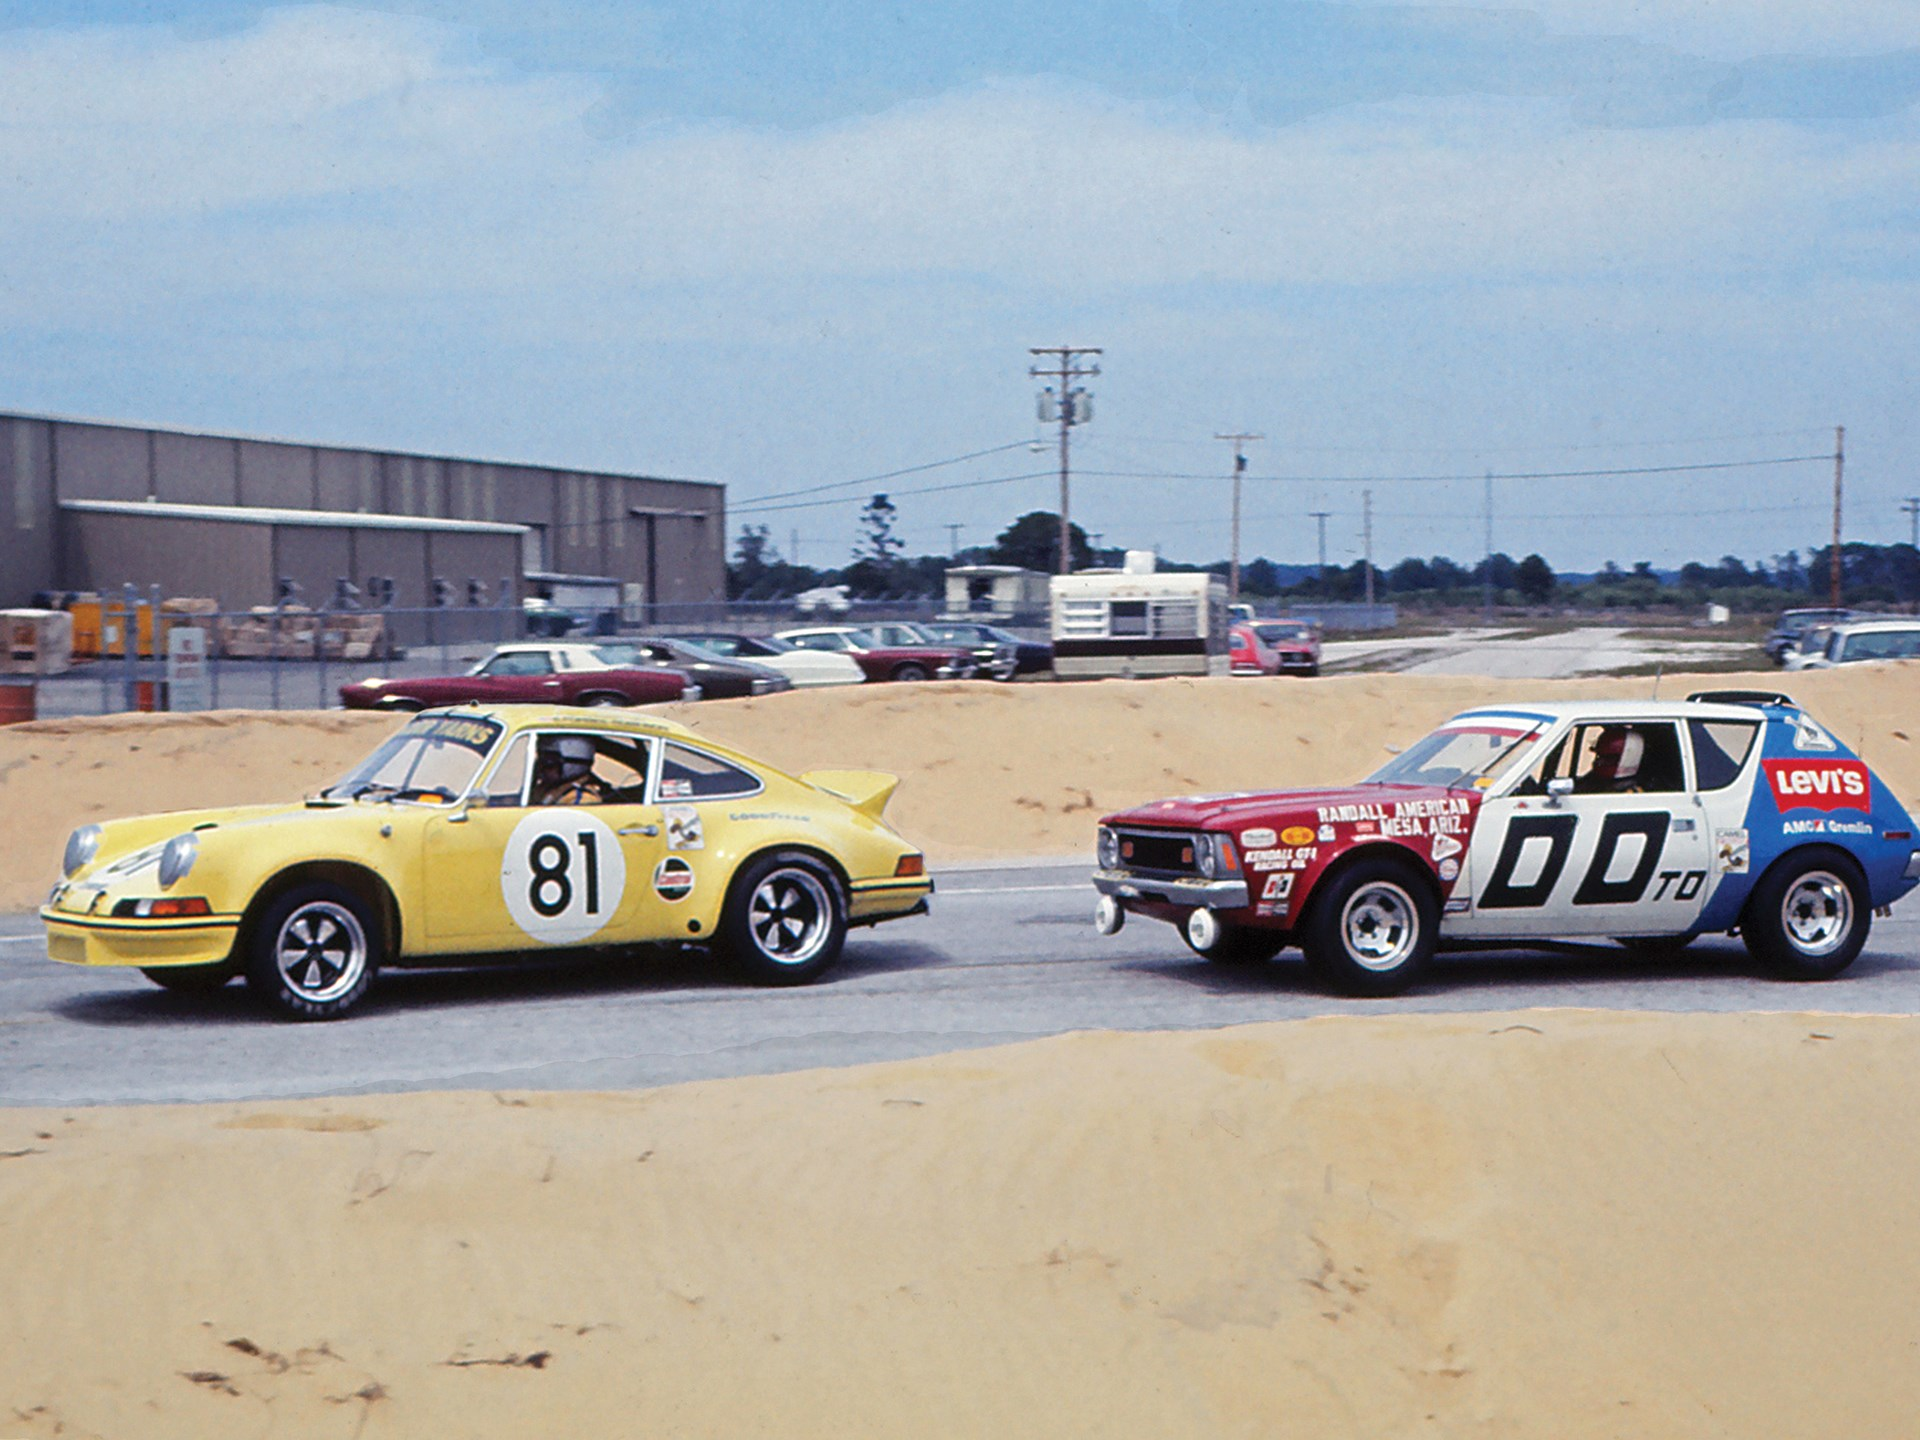 The 2.8 RSR racing past an AMC Gremlin at the 1973 12 Hours of Sebring.